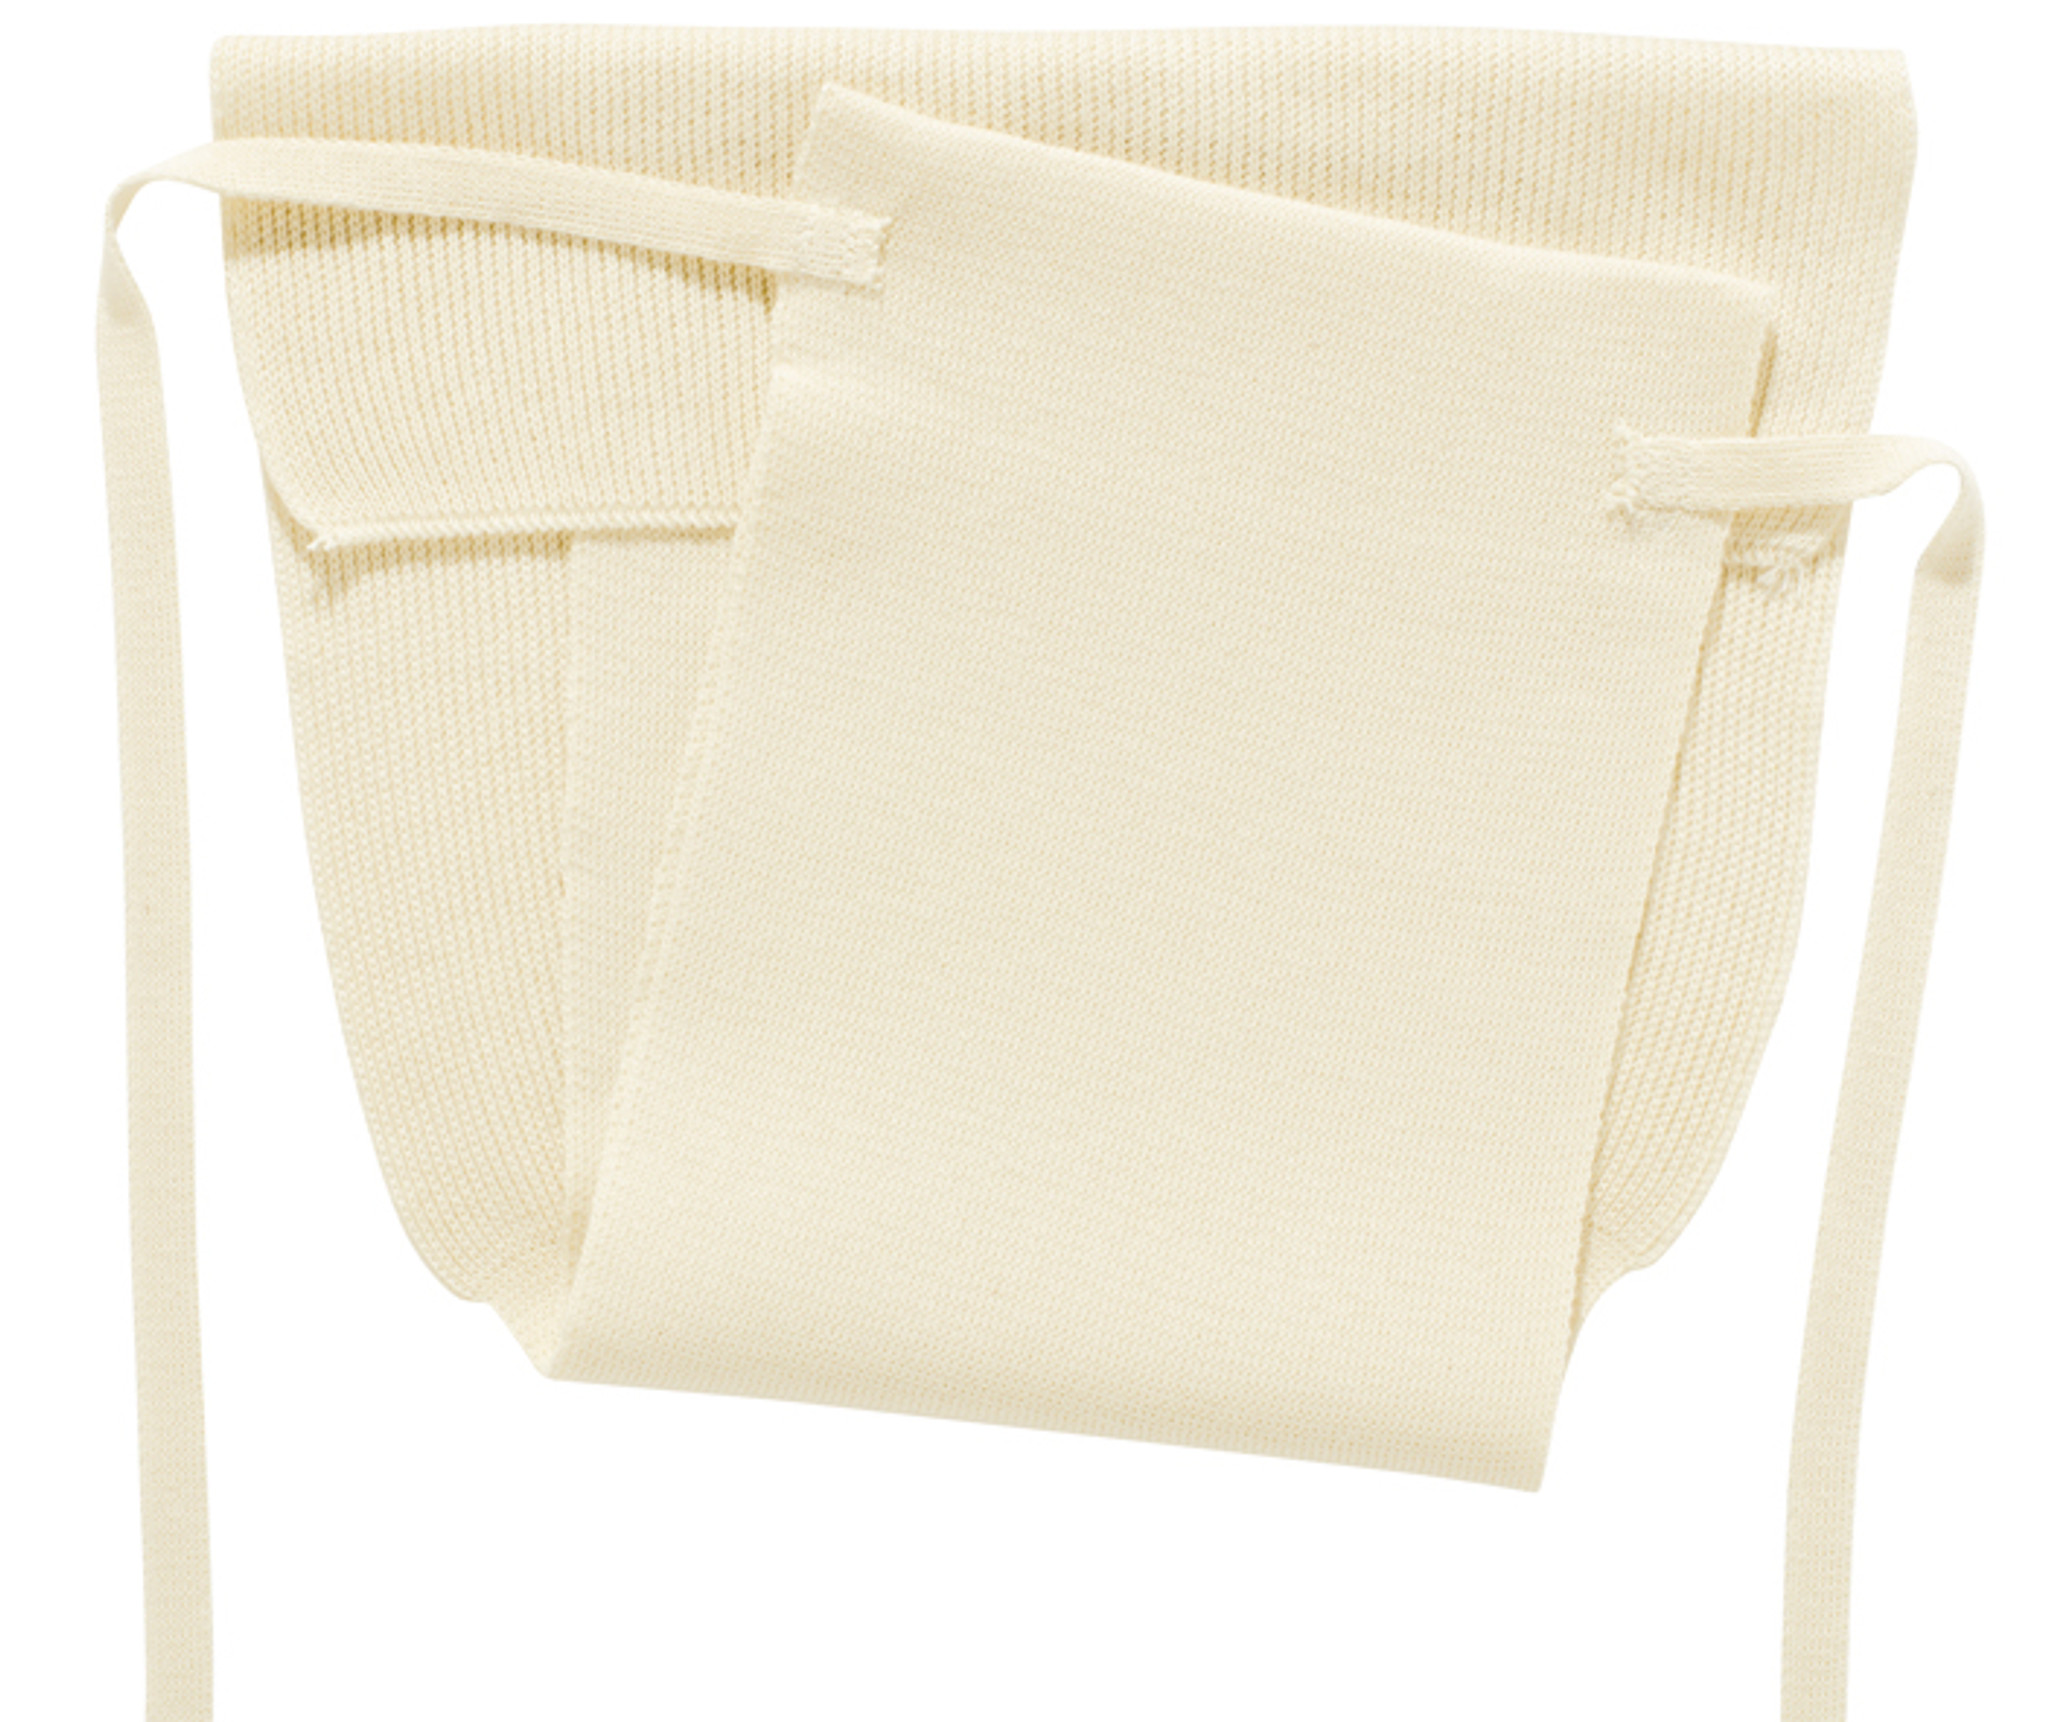 a0a12a8bb131 Disana Organic Cotton Tie Nappy (Pack of 3) - Little Spruce Organics